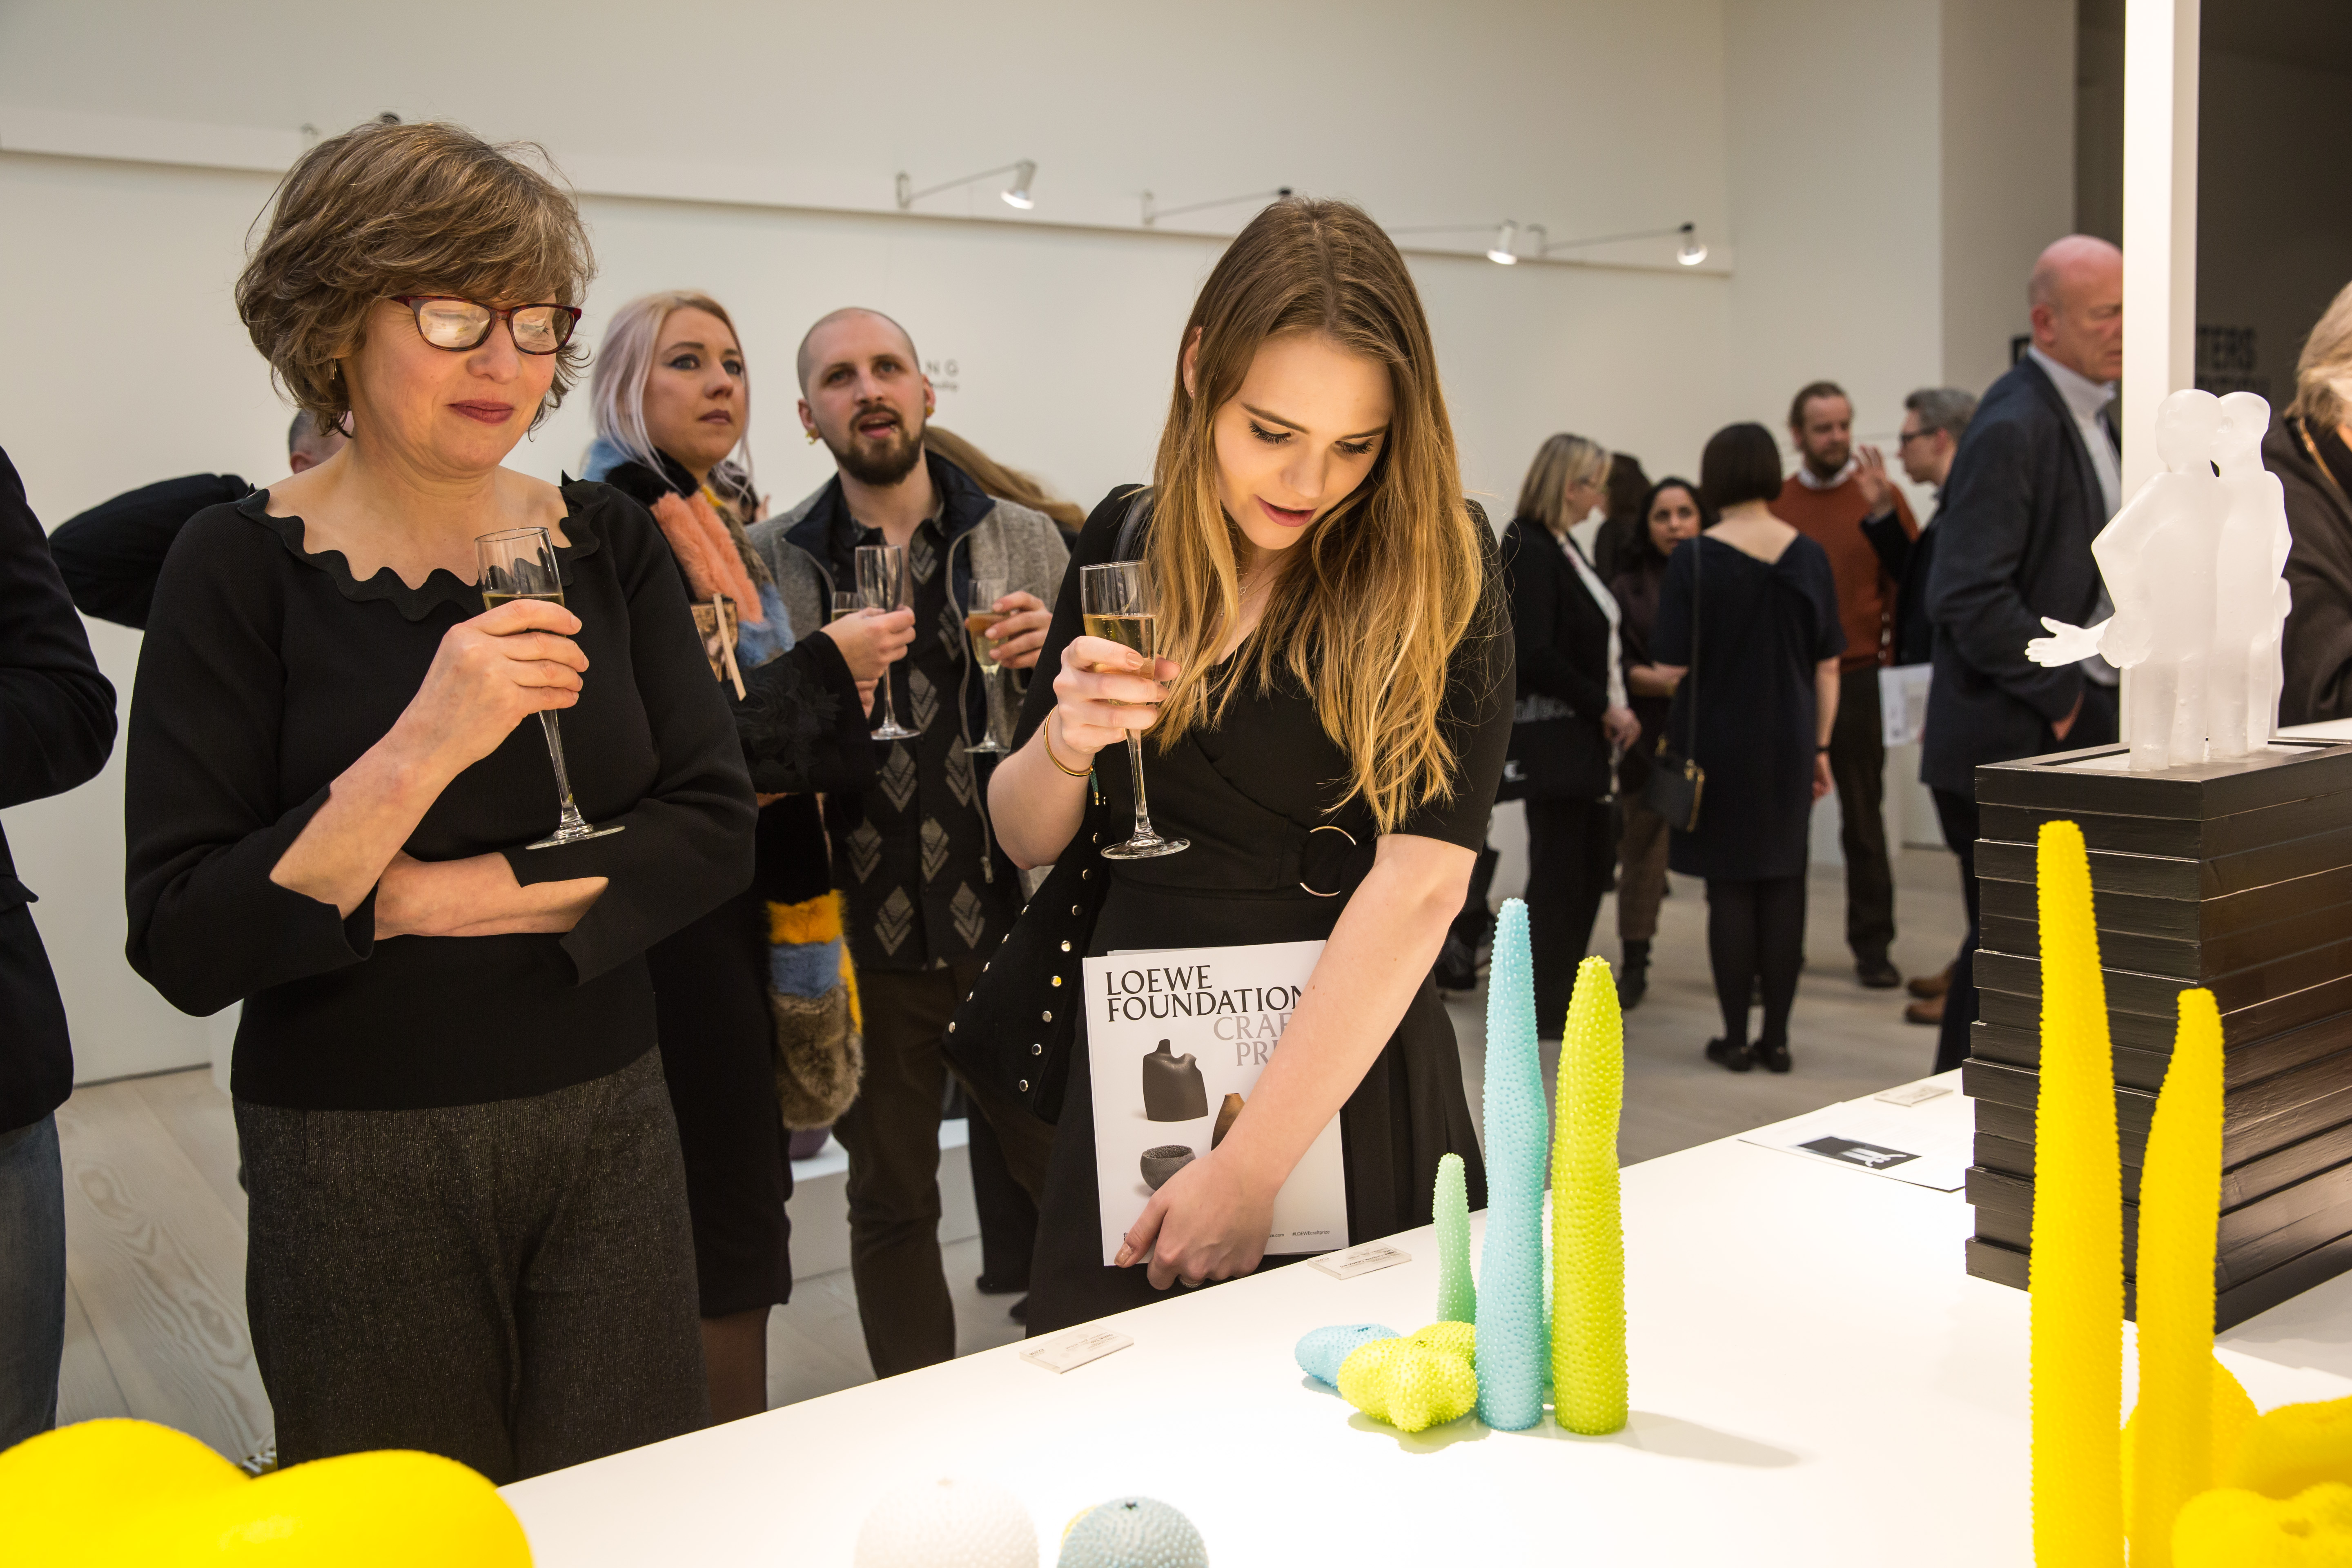 Collect 2018. Photo: Iona Wolff, courtesy of Collect